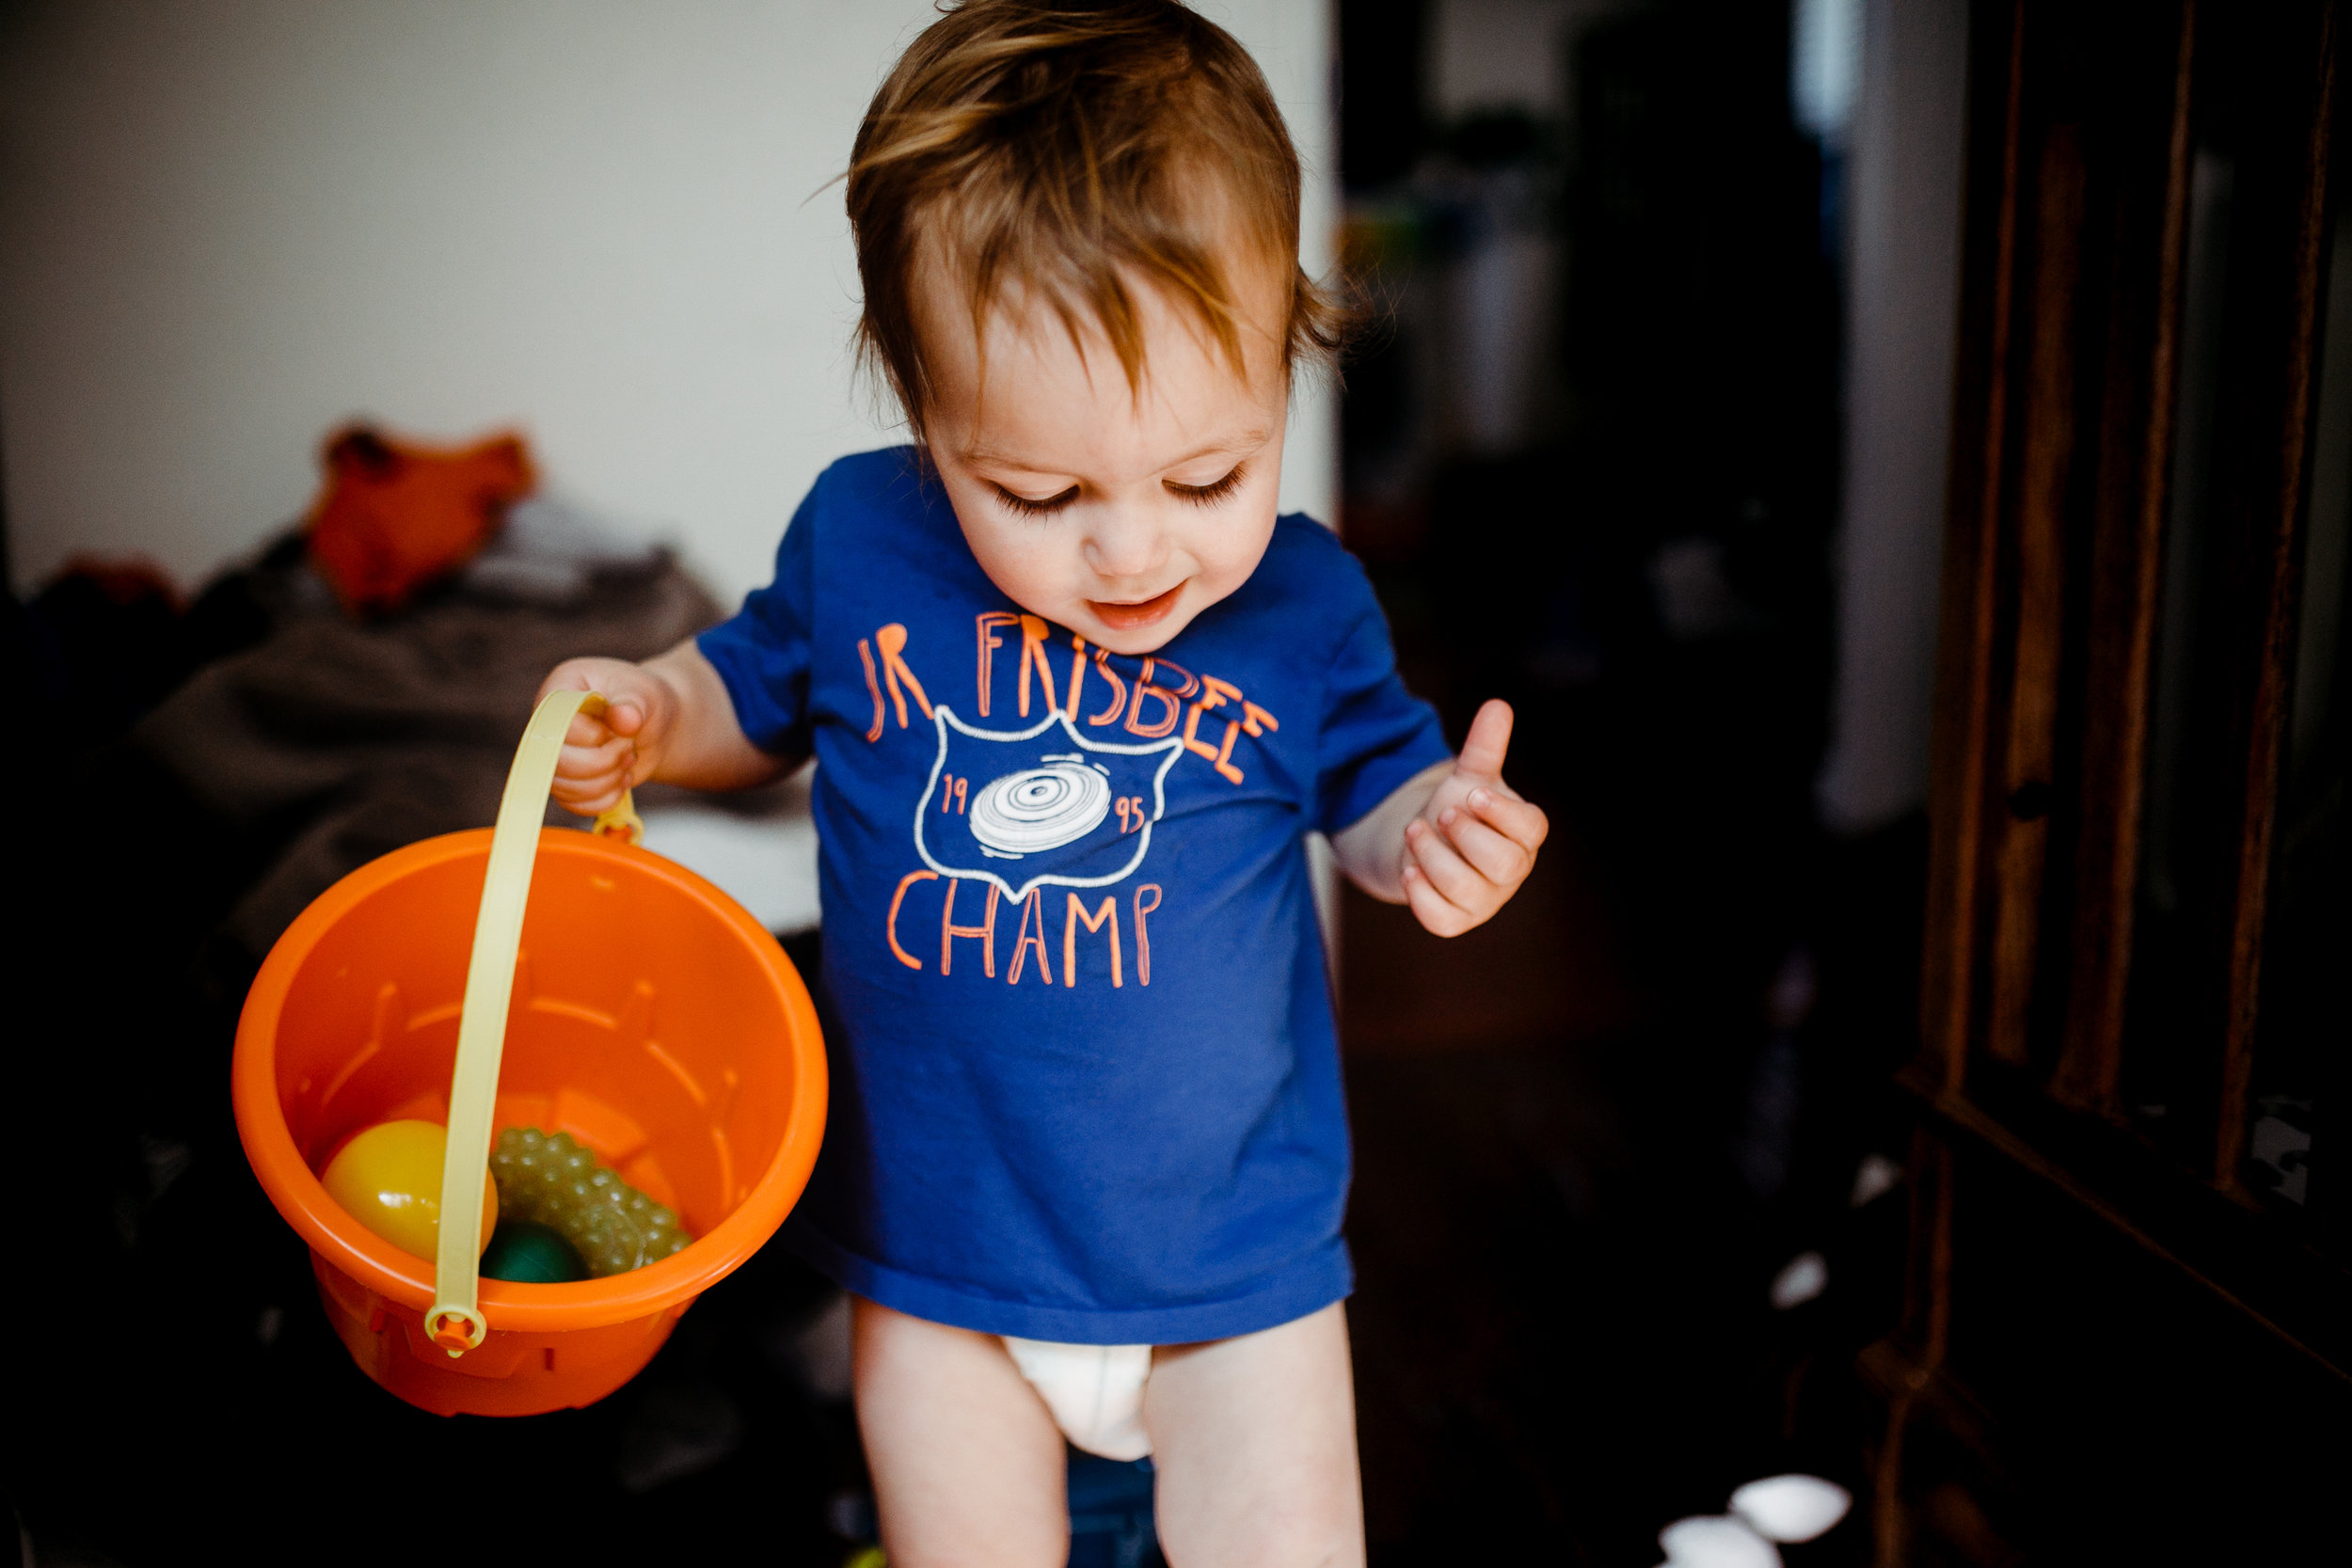 Archer Inspired Photography Family Lifestyle Photographer Morgan Hill California San Jose In Home Documentary Session Toddler-2.jpg